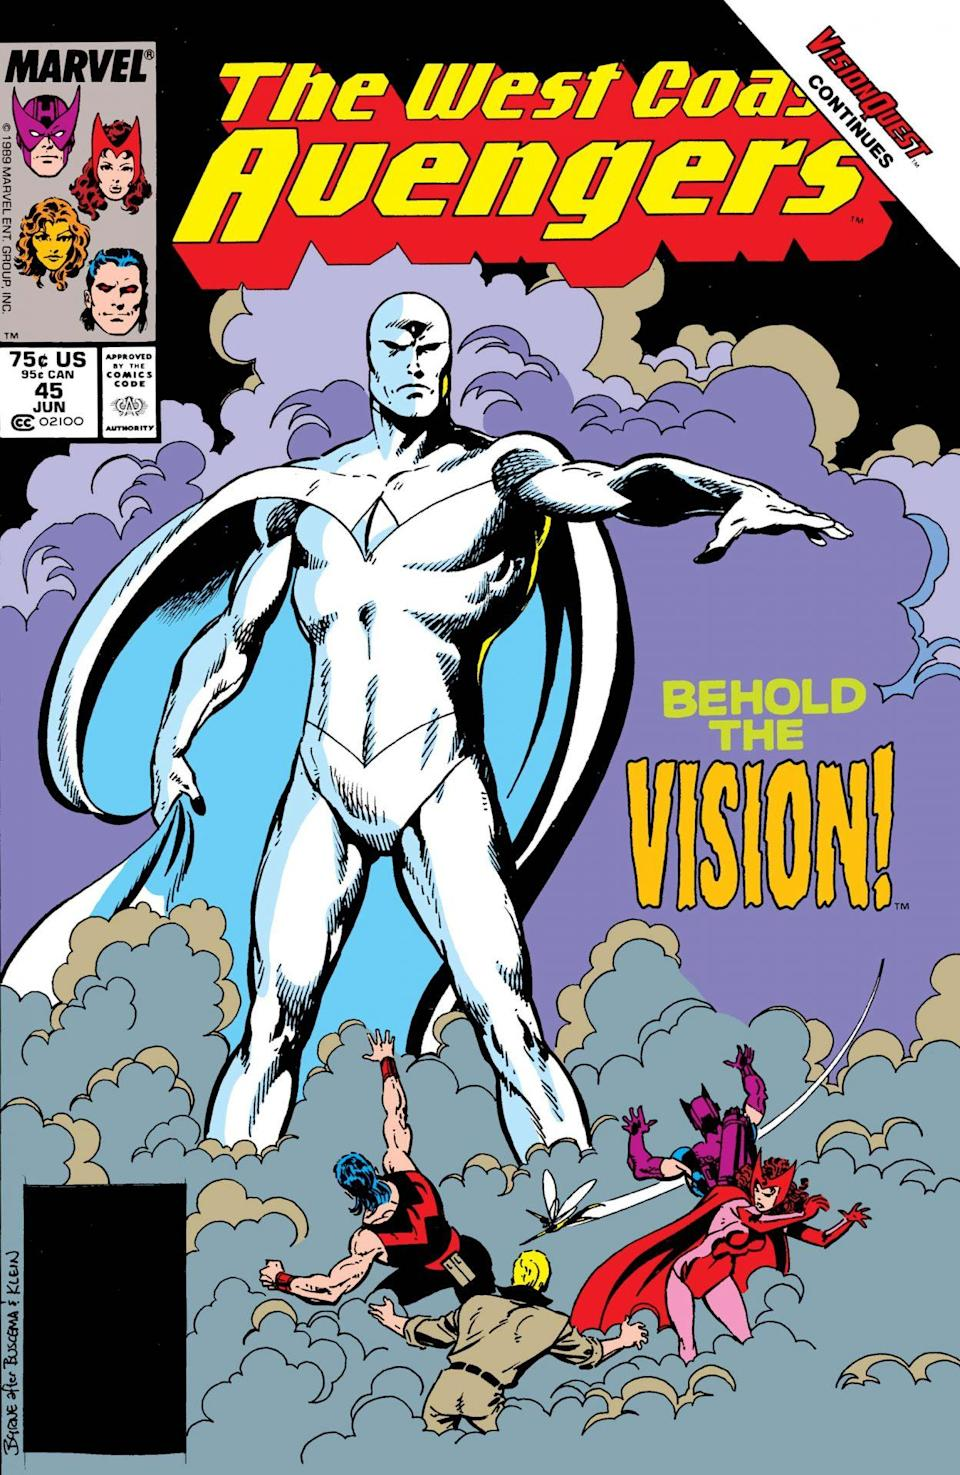 White Vision stands tall in the clouds on the cover of The West Coast Avengers